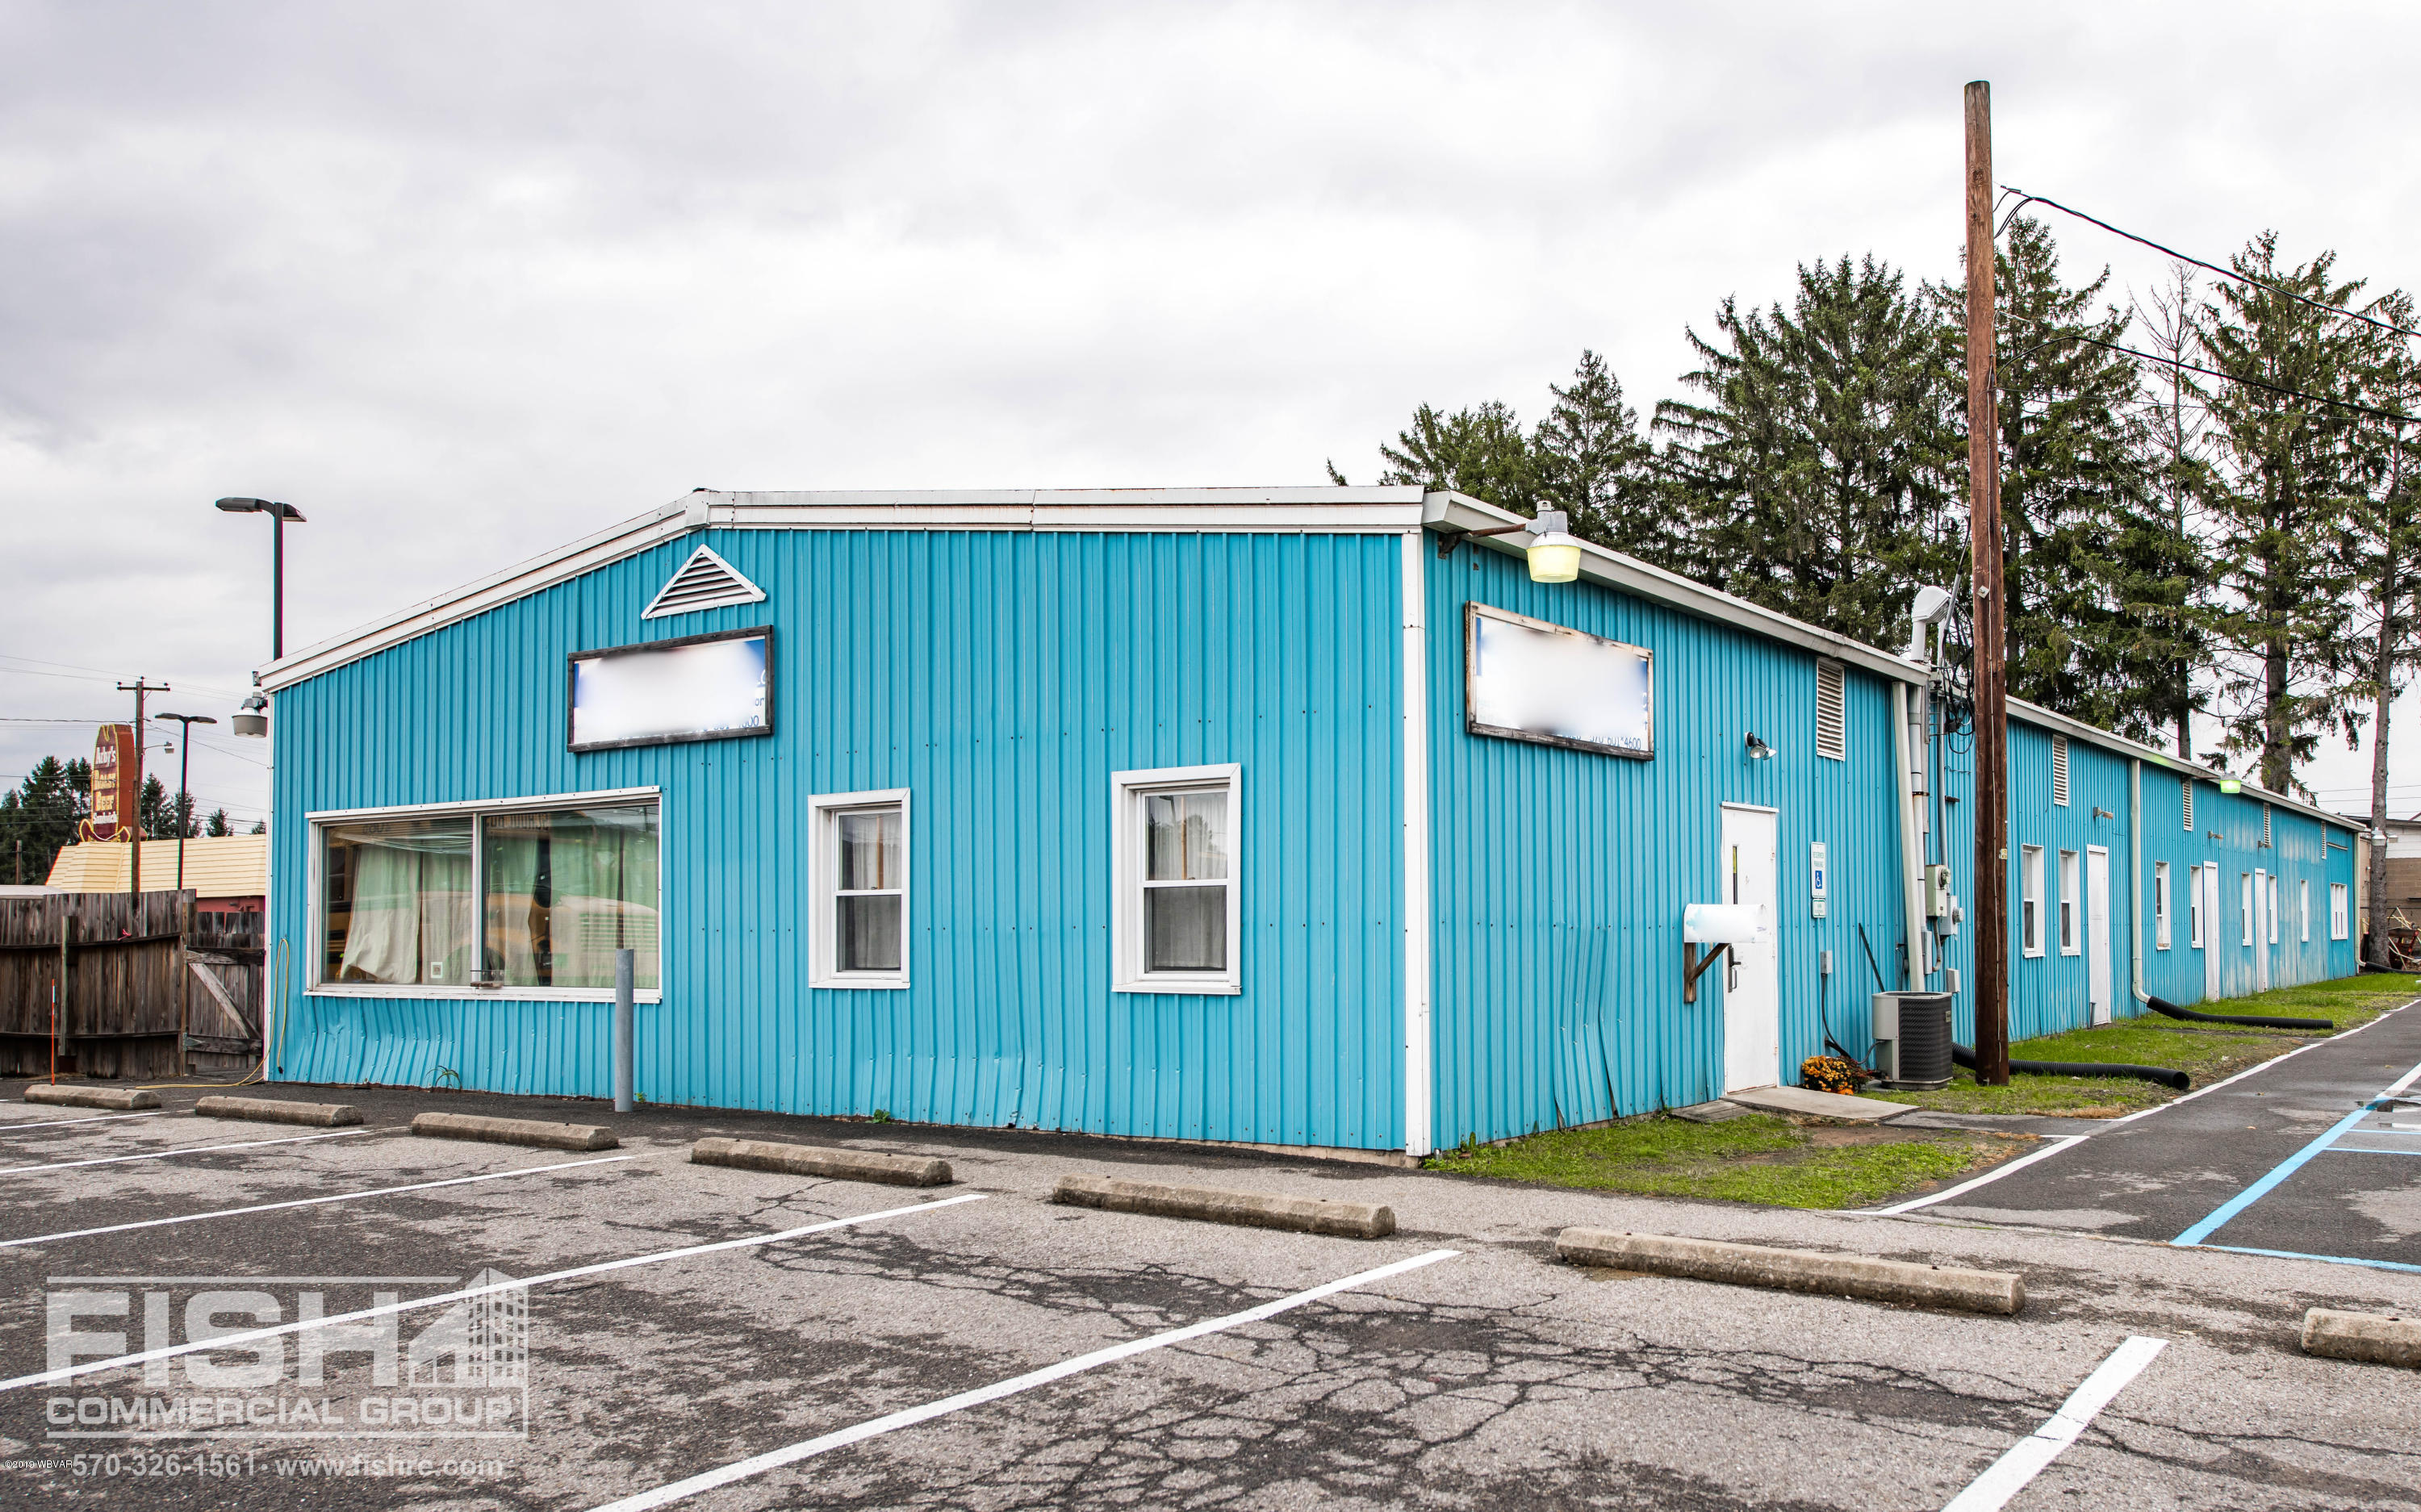 220 RUSSELL AVENUE,Williamsport,PA 17701,4 BathroomsBathrooms,Commercial sales,RUSSELL,WB-86173